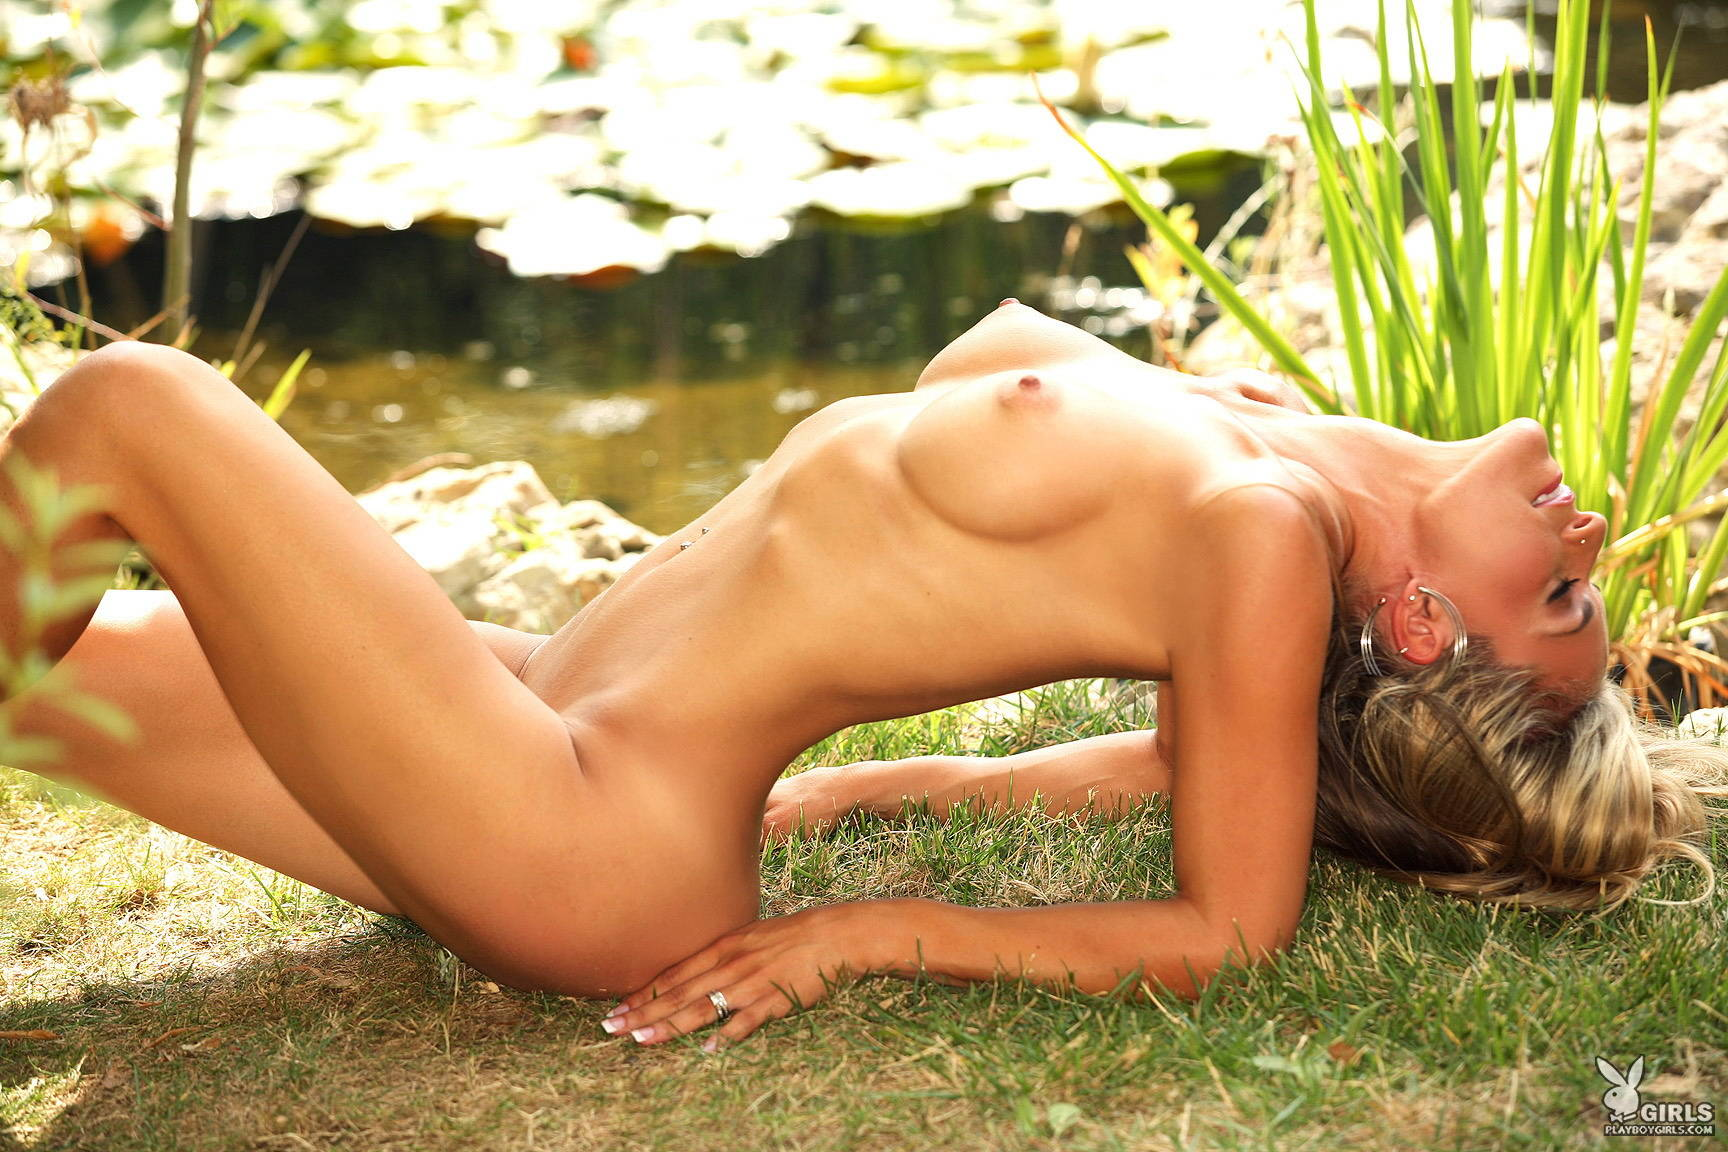 kelly-hargraves-blonde-garden-pond-nude-playboy-20